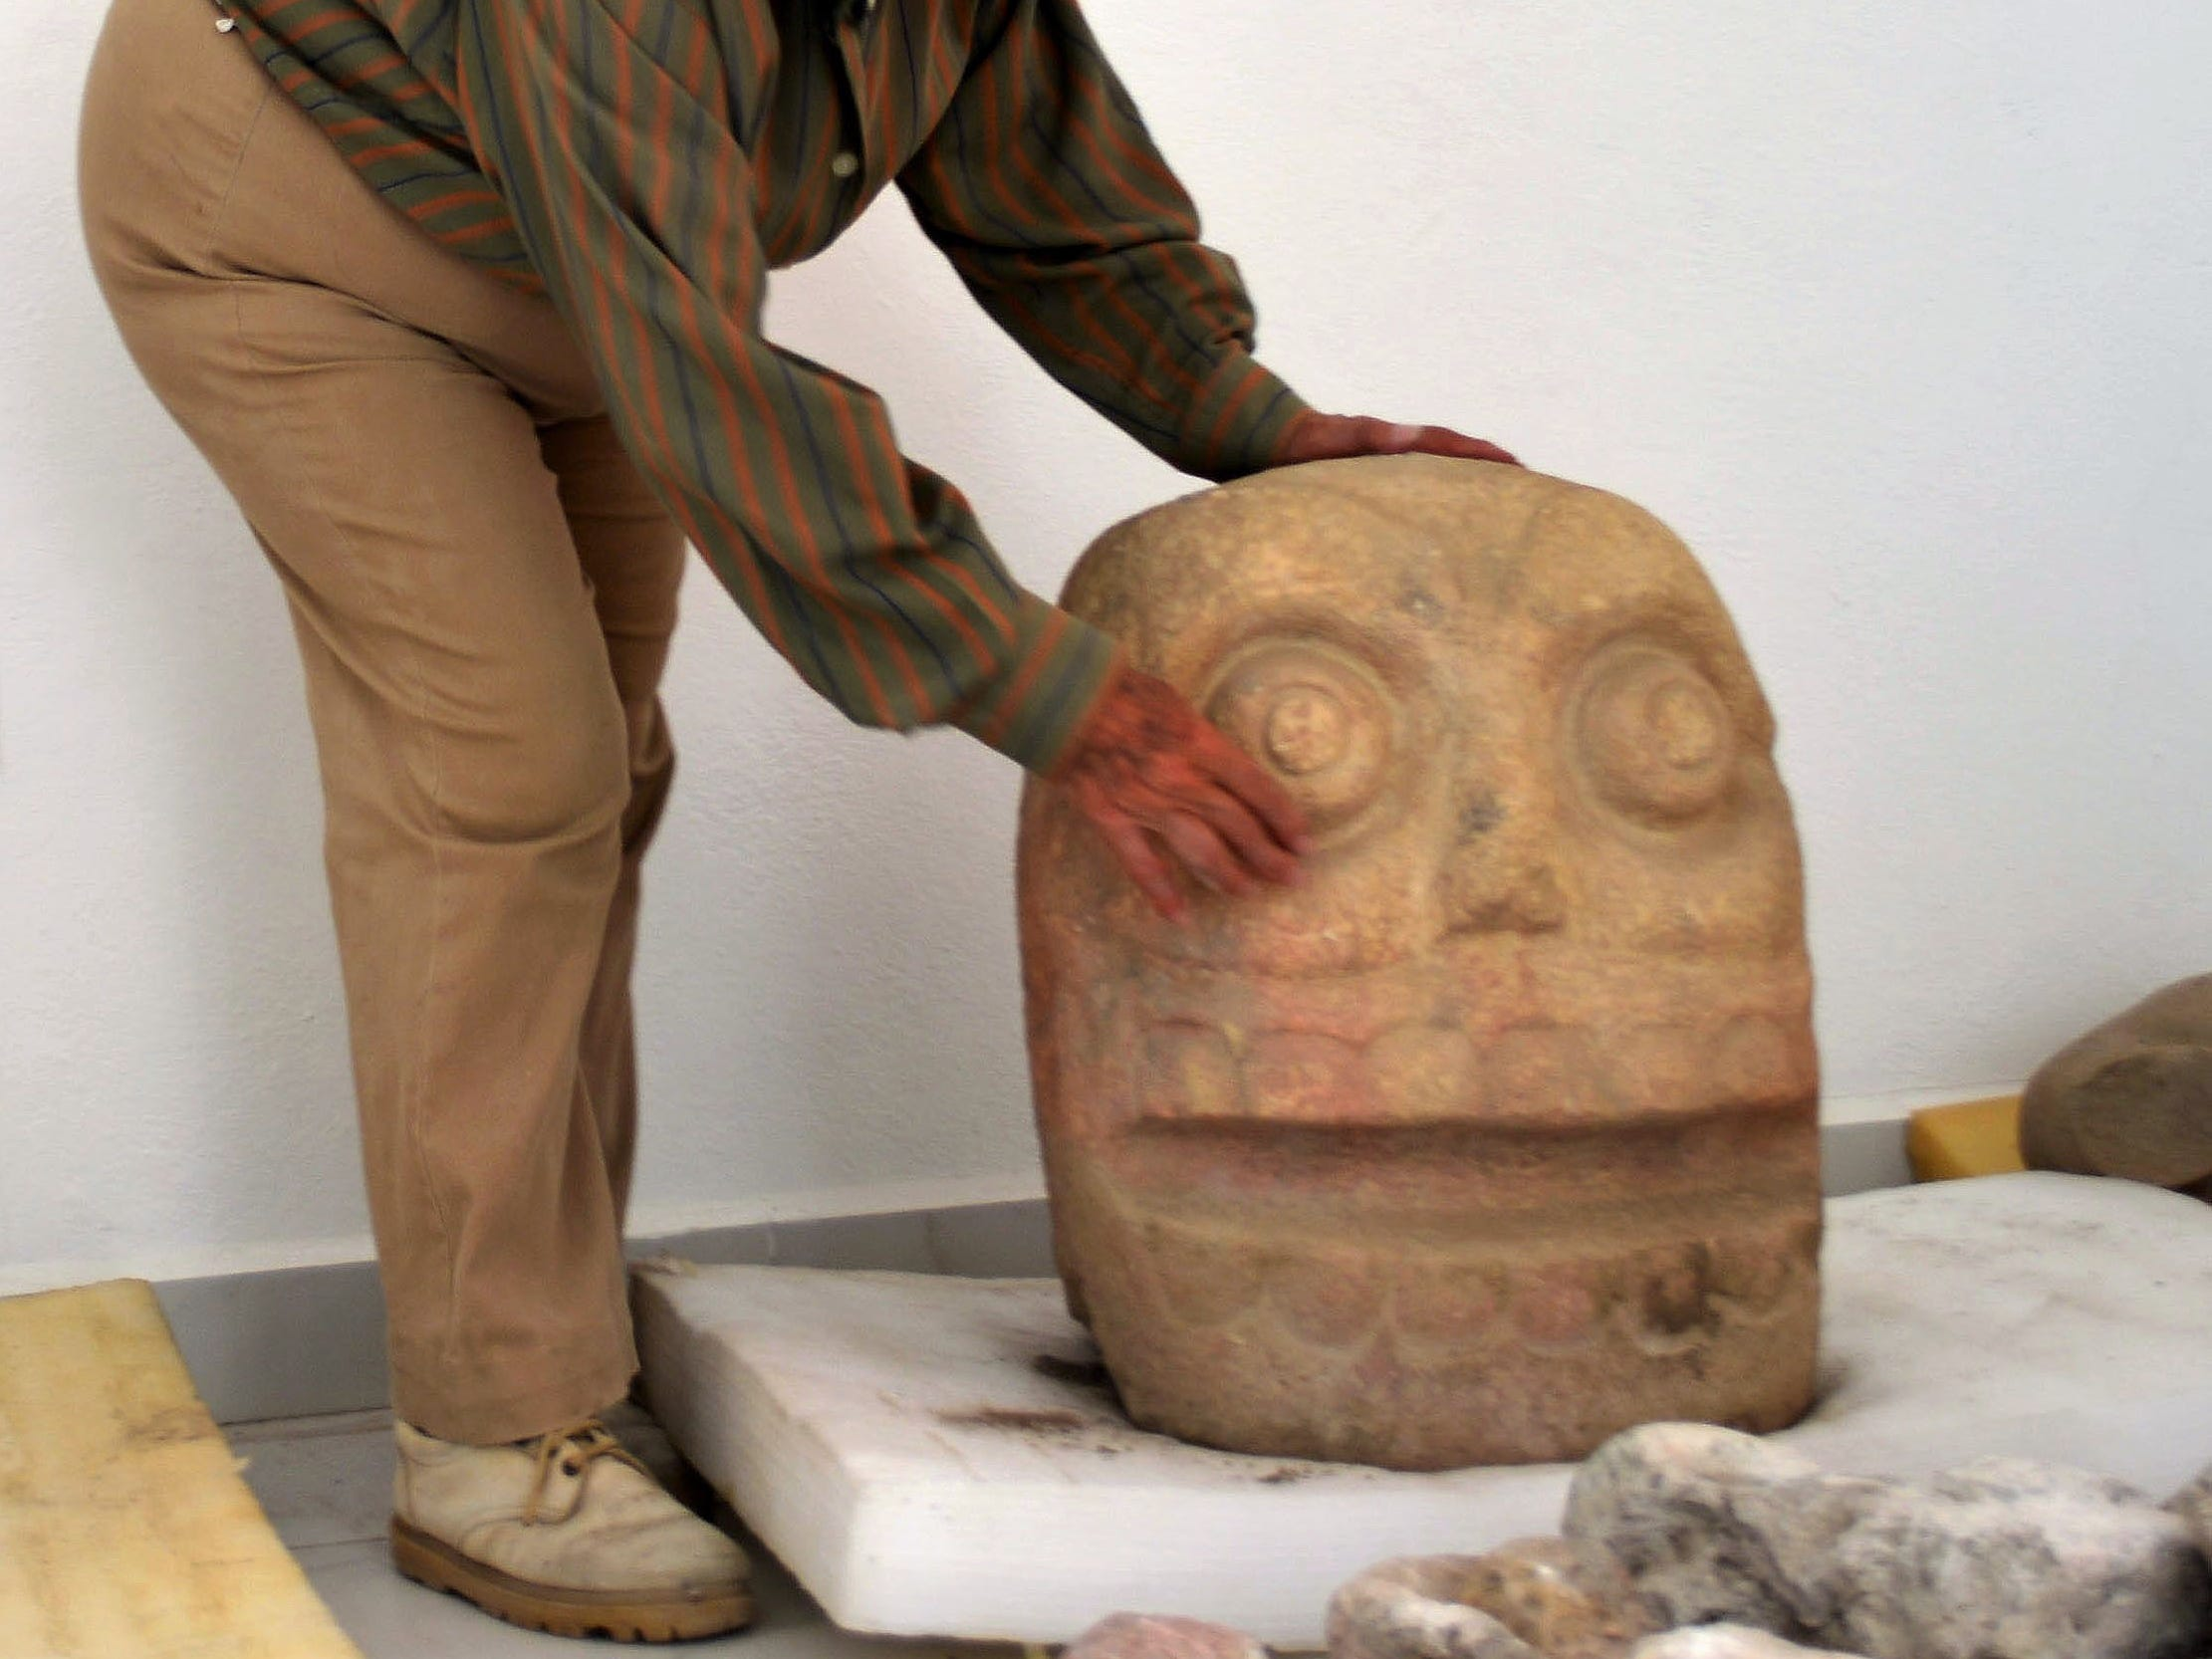 Handout picture released by Mexico's National Institute of Anthropology and History (INAH) taken on October 12, 2018 showing Mexican archaeologist Noemi Castillo showing a sculpture found at the first temple recently discovered of pre-Hispanic fertility god Xipe Totec (The Flayed Lord), in the archaeological site of Ndachjian-Tehuacan, in the Mexican state of Puebla.